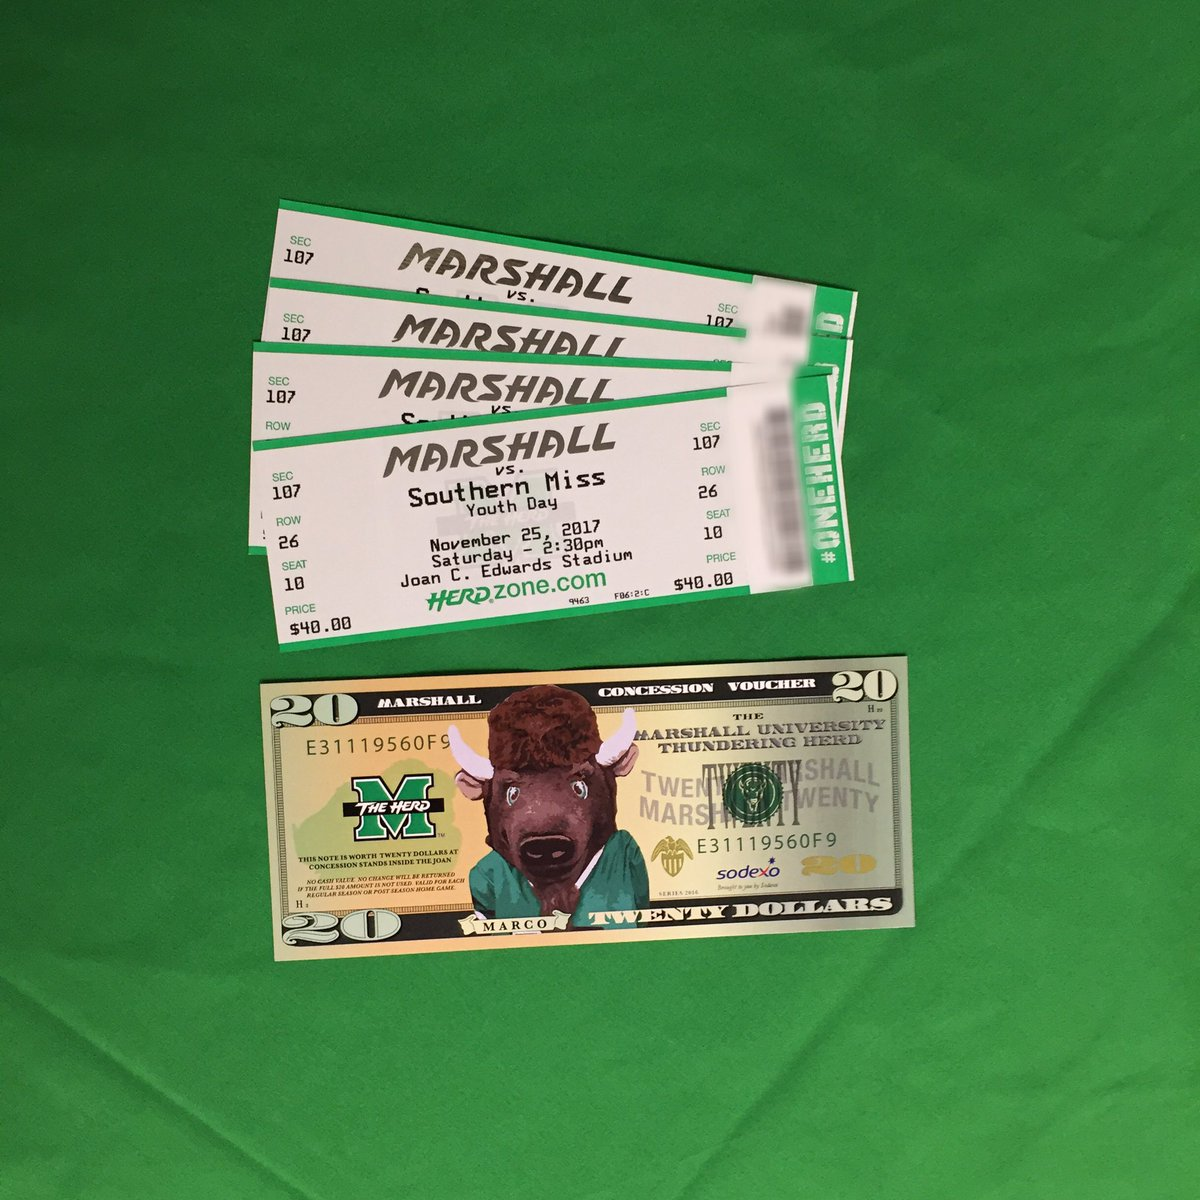 Retweet This For Your Chance To Win A Family Pack The Herdfb Vs Southern Miss Weekend 4 Tickets 20 Concession Voucher